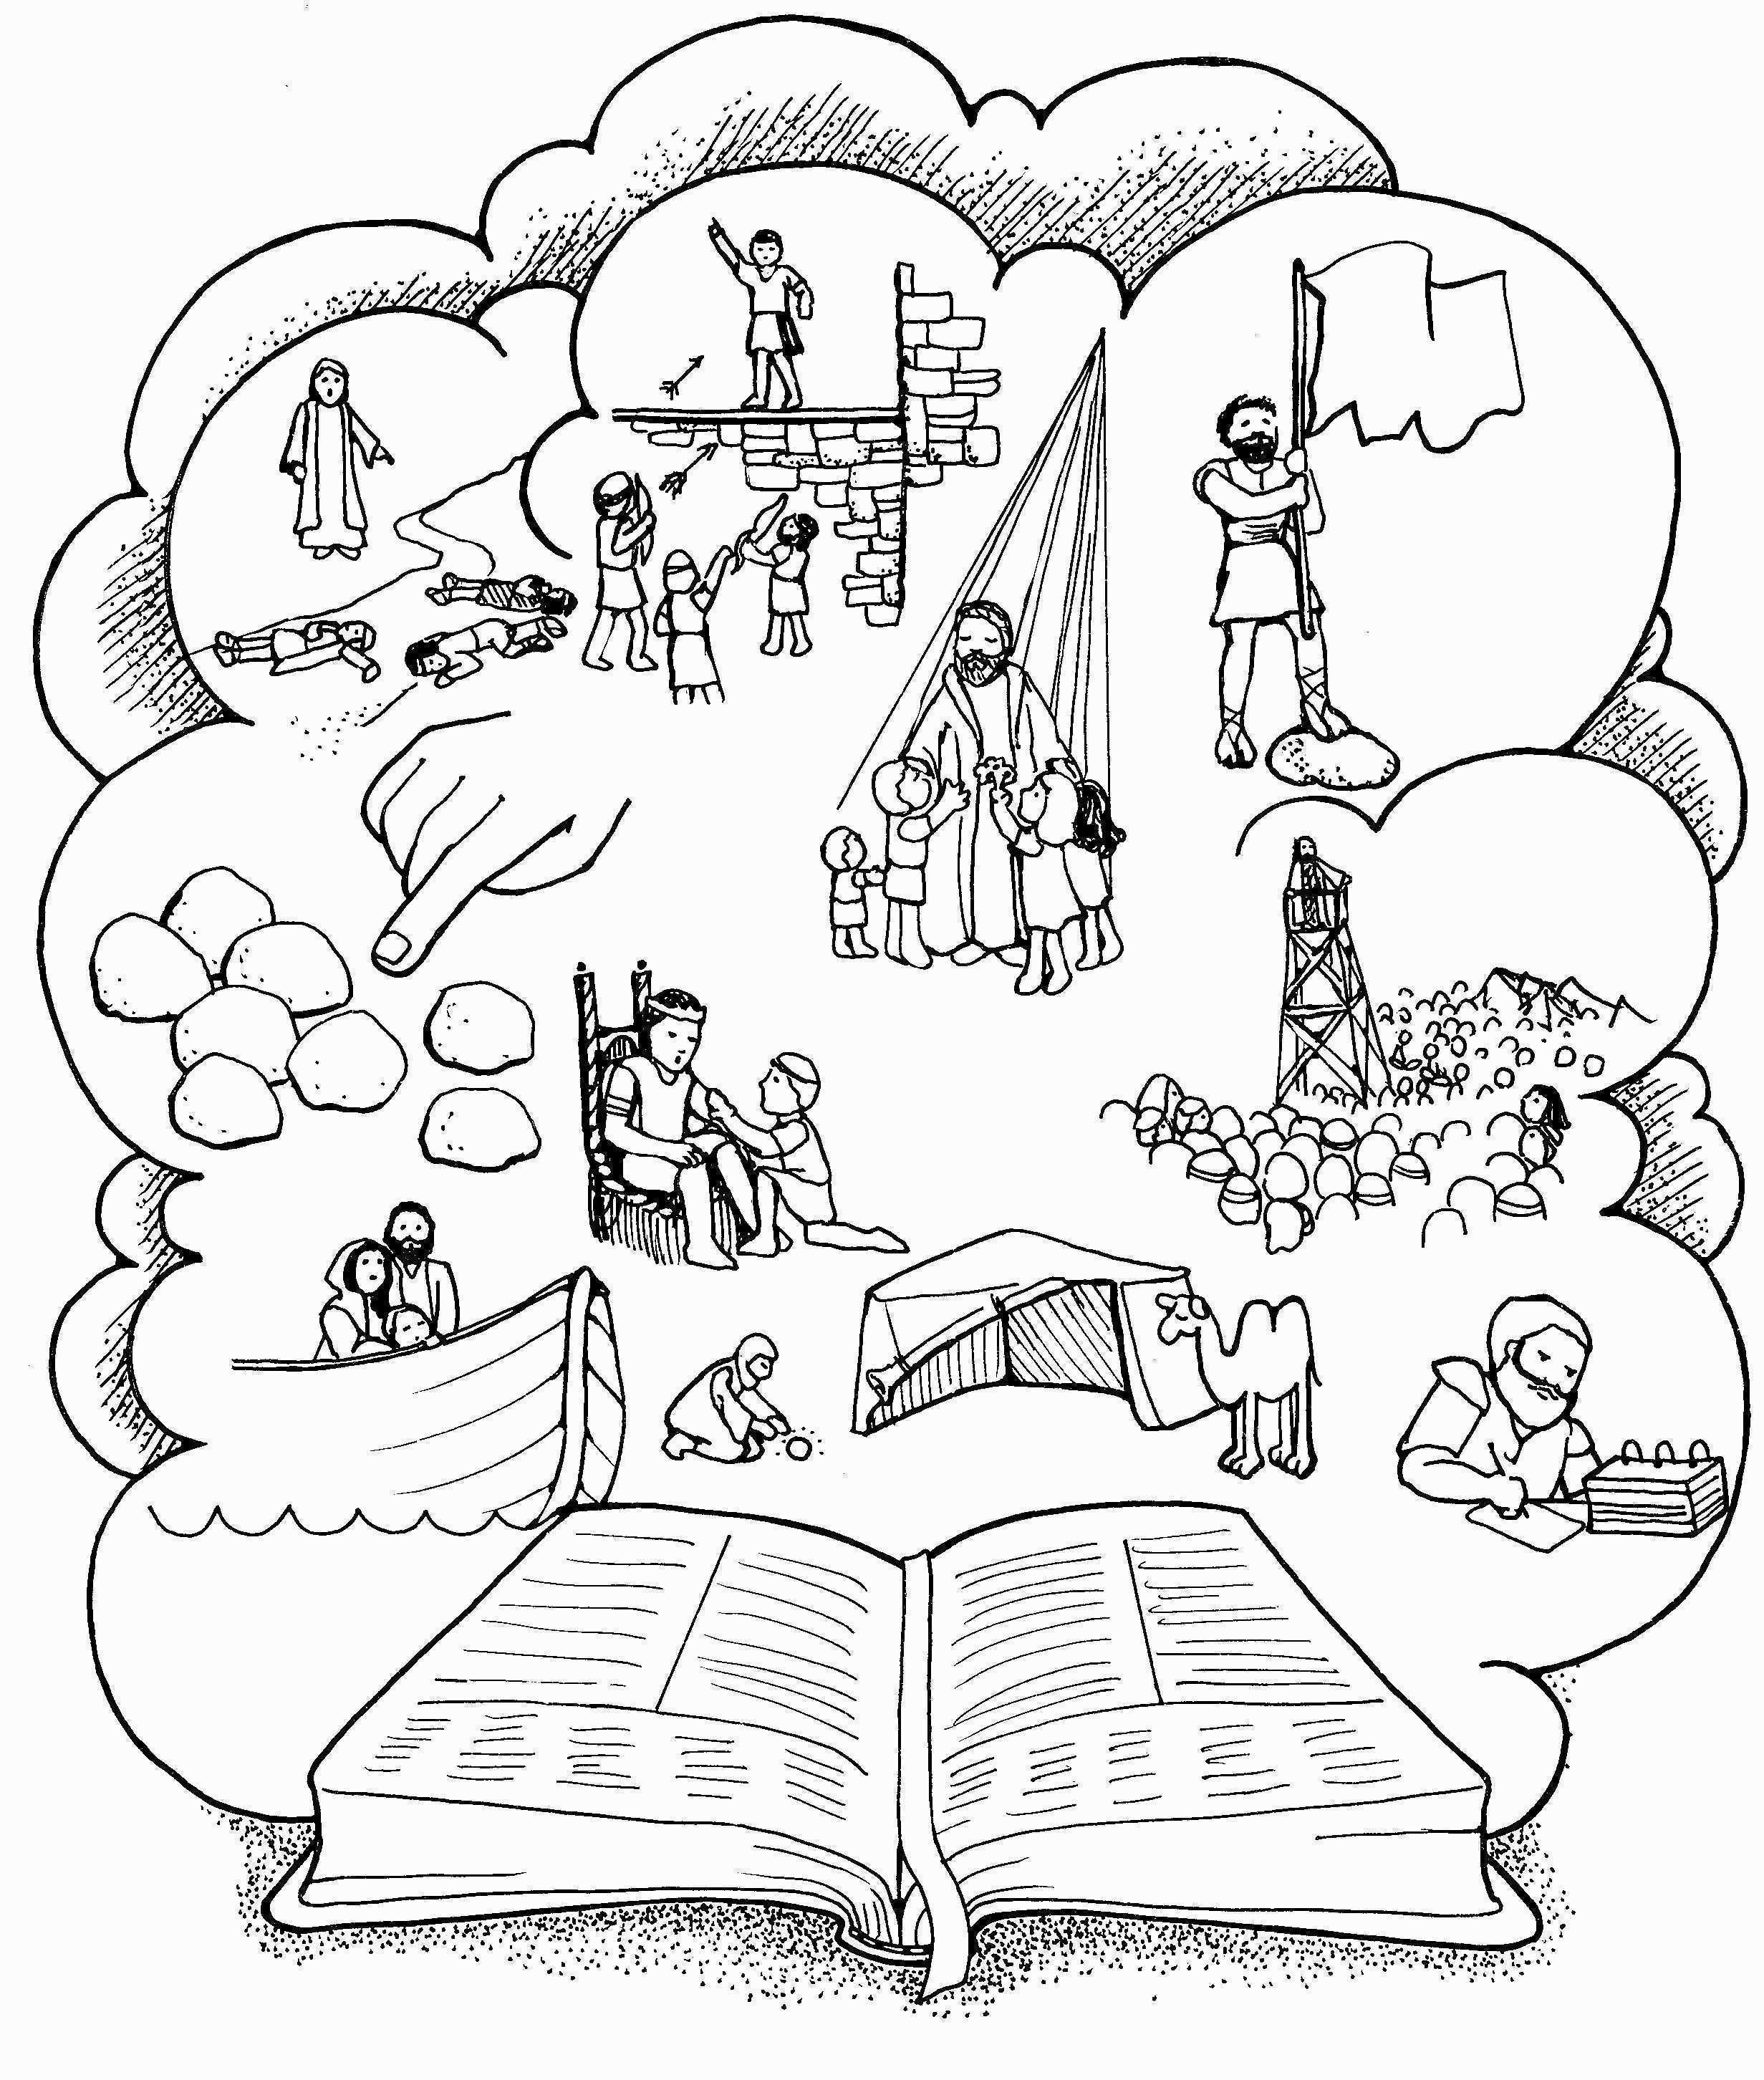 Coloring Book Activities Awesome Book Coloring Pages Best sol R